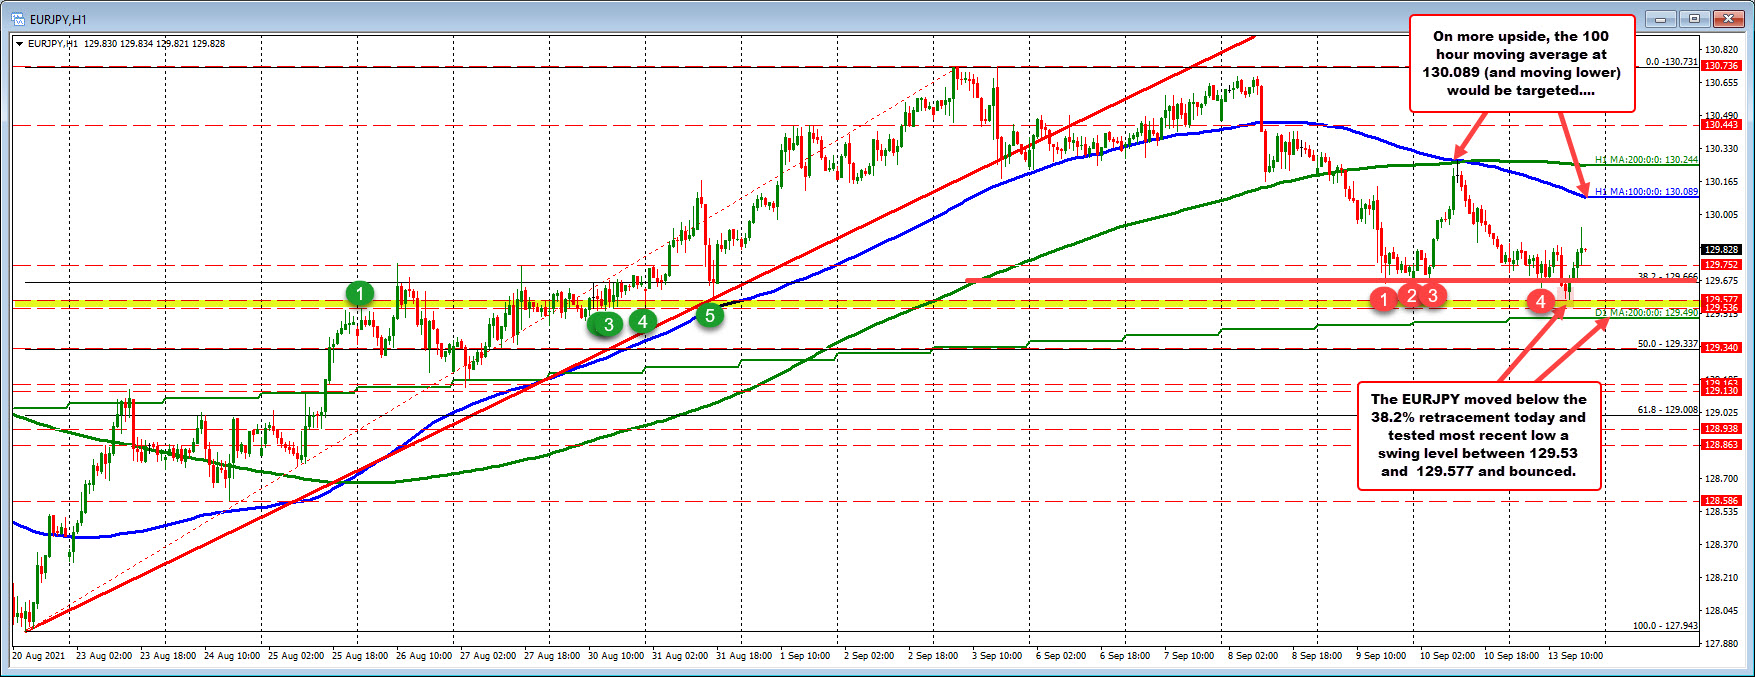 Moved back above the 38.2% retracement_